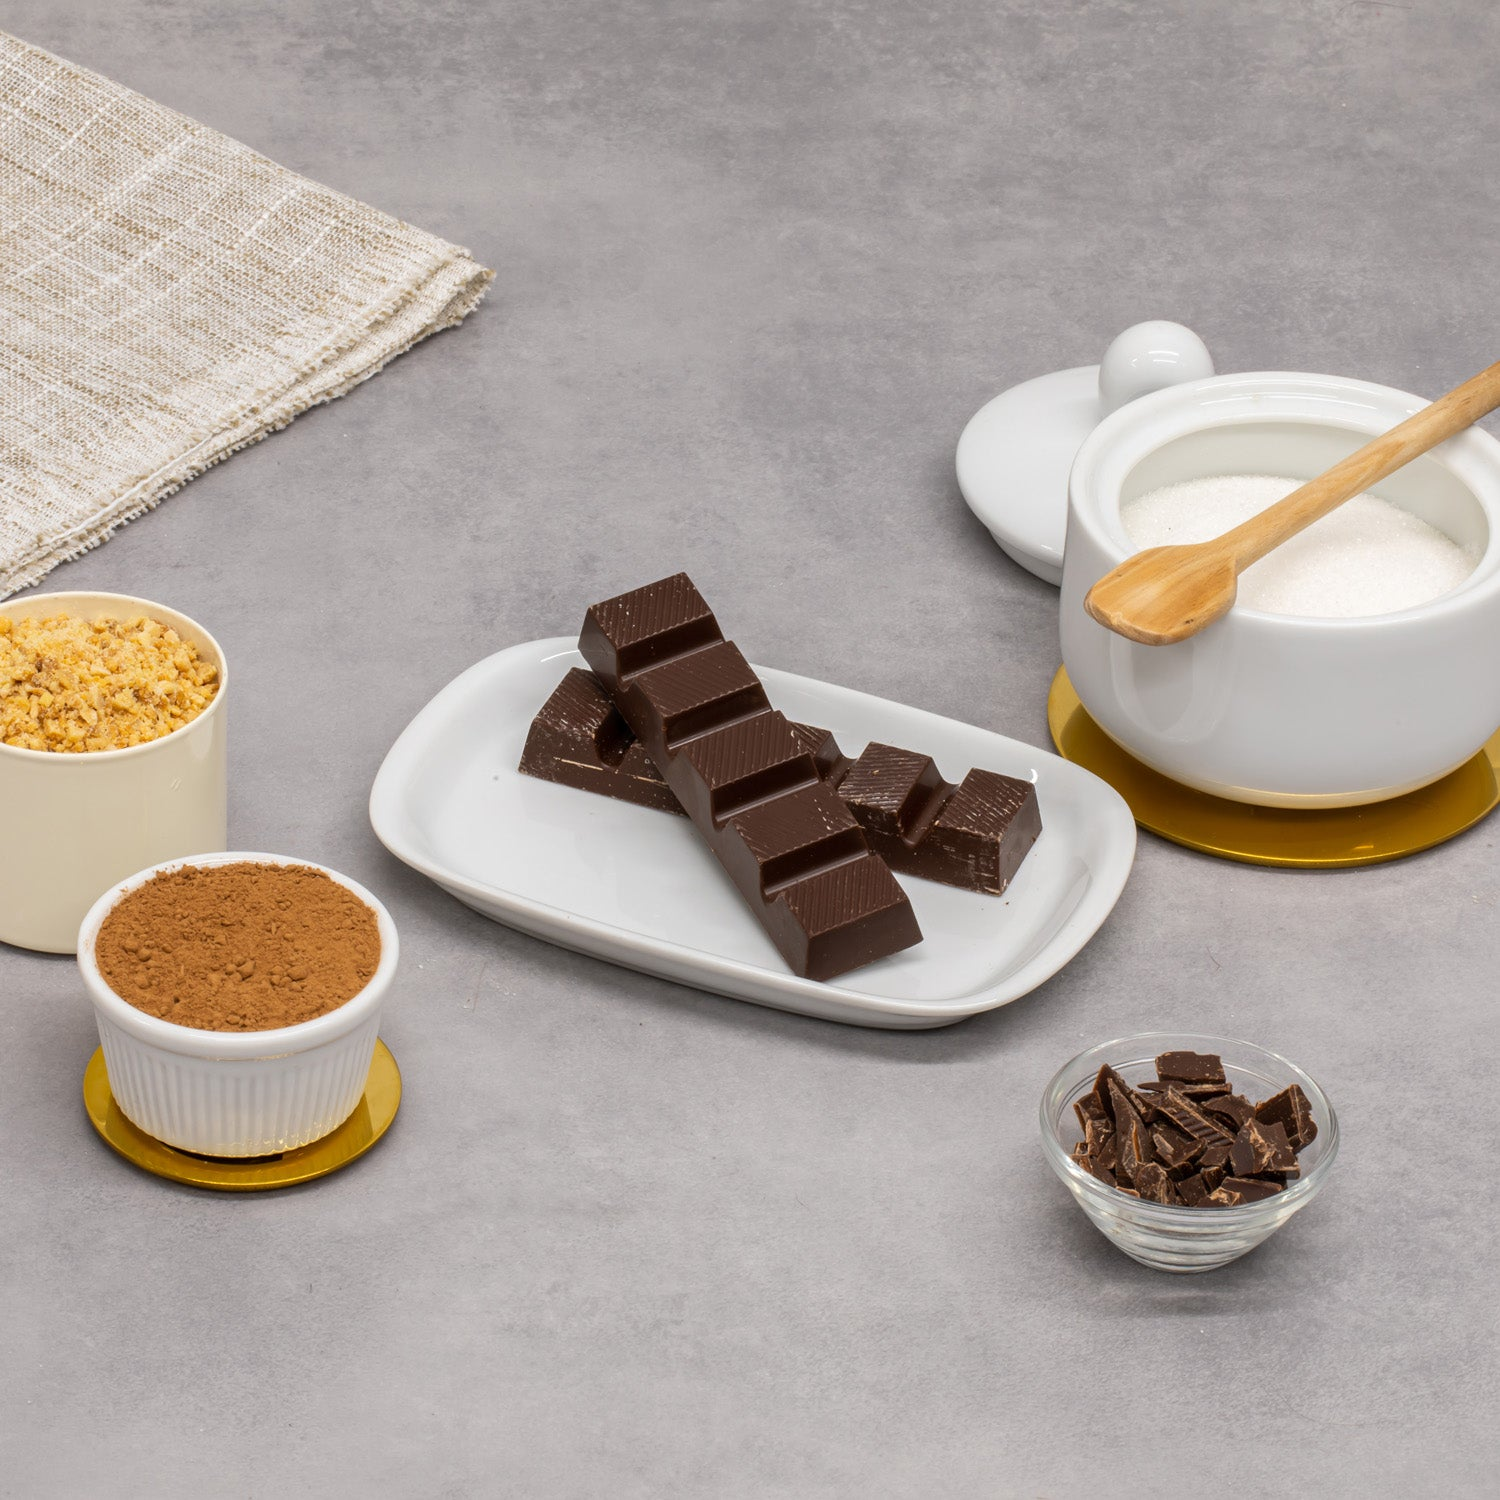 Tablete de Chocolate Negro com Biscoito